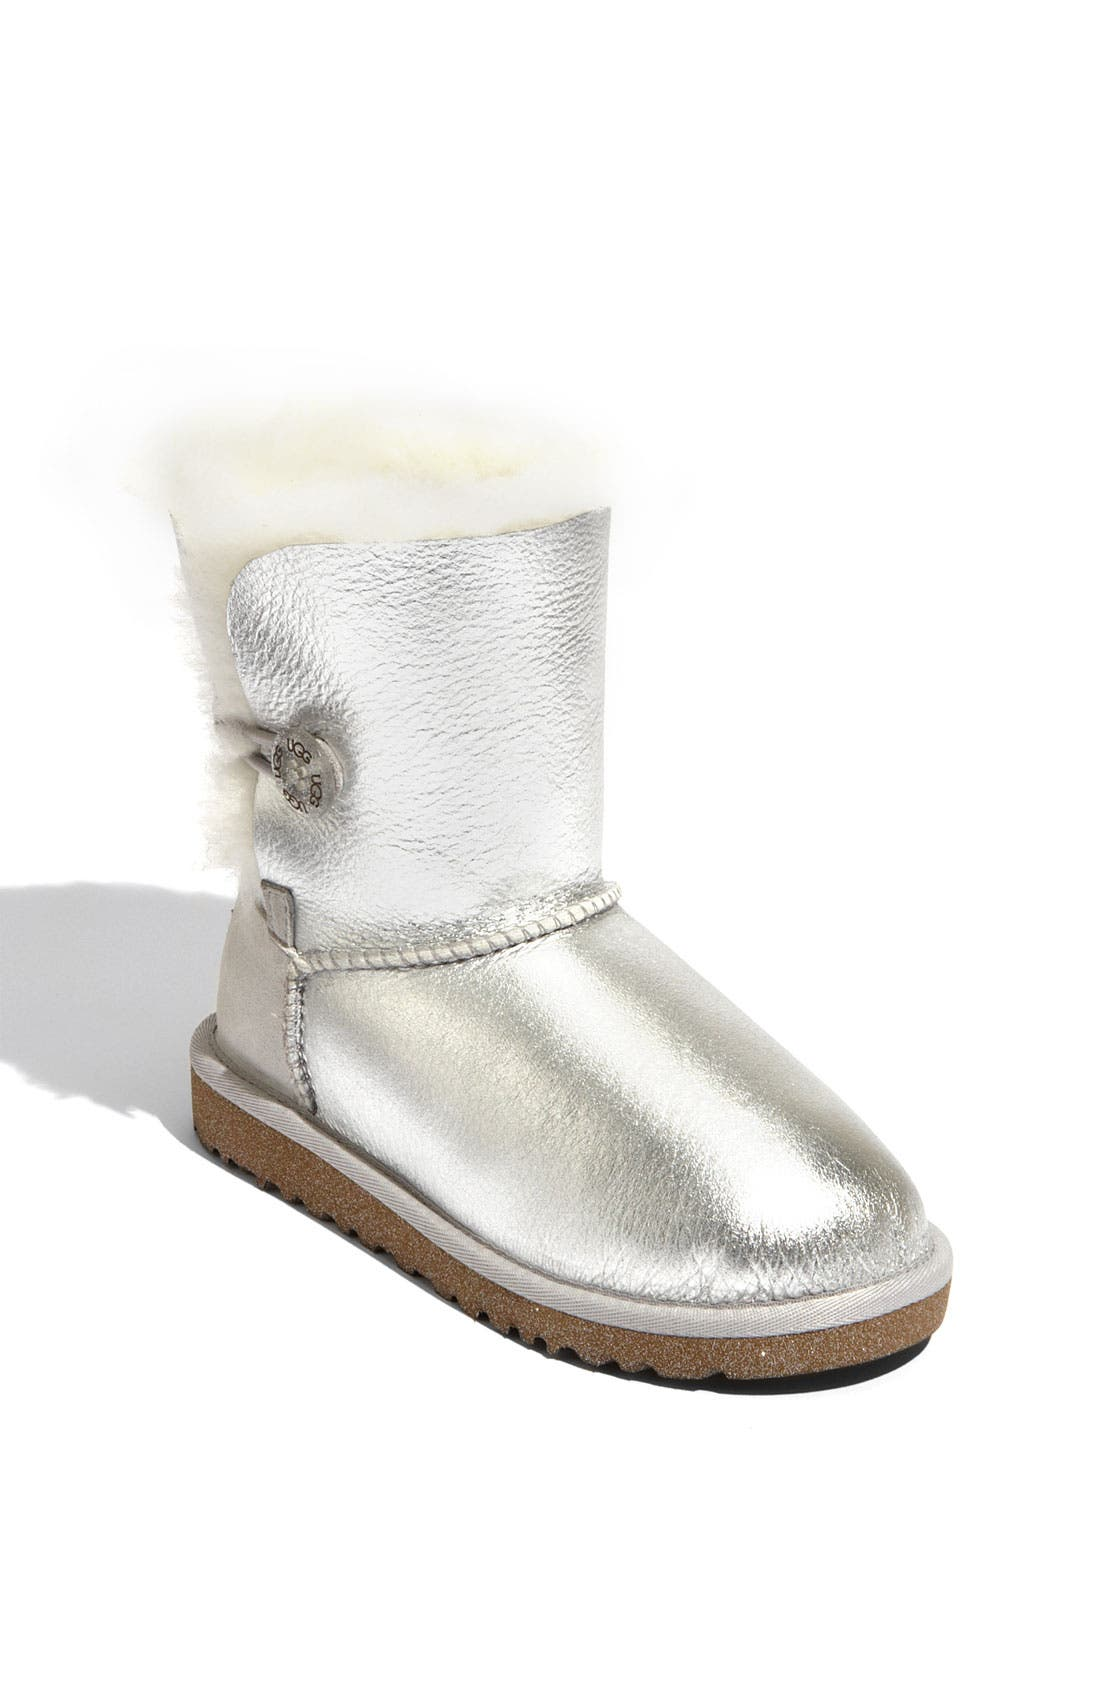 Alternate Image 1 Selected - UGG® Australia 'Bailey' Button Boot (Walker, Toddler, Little Kid & Big Kid)